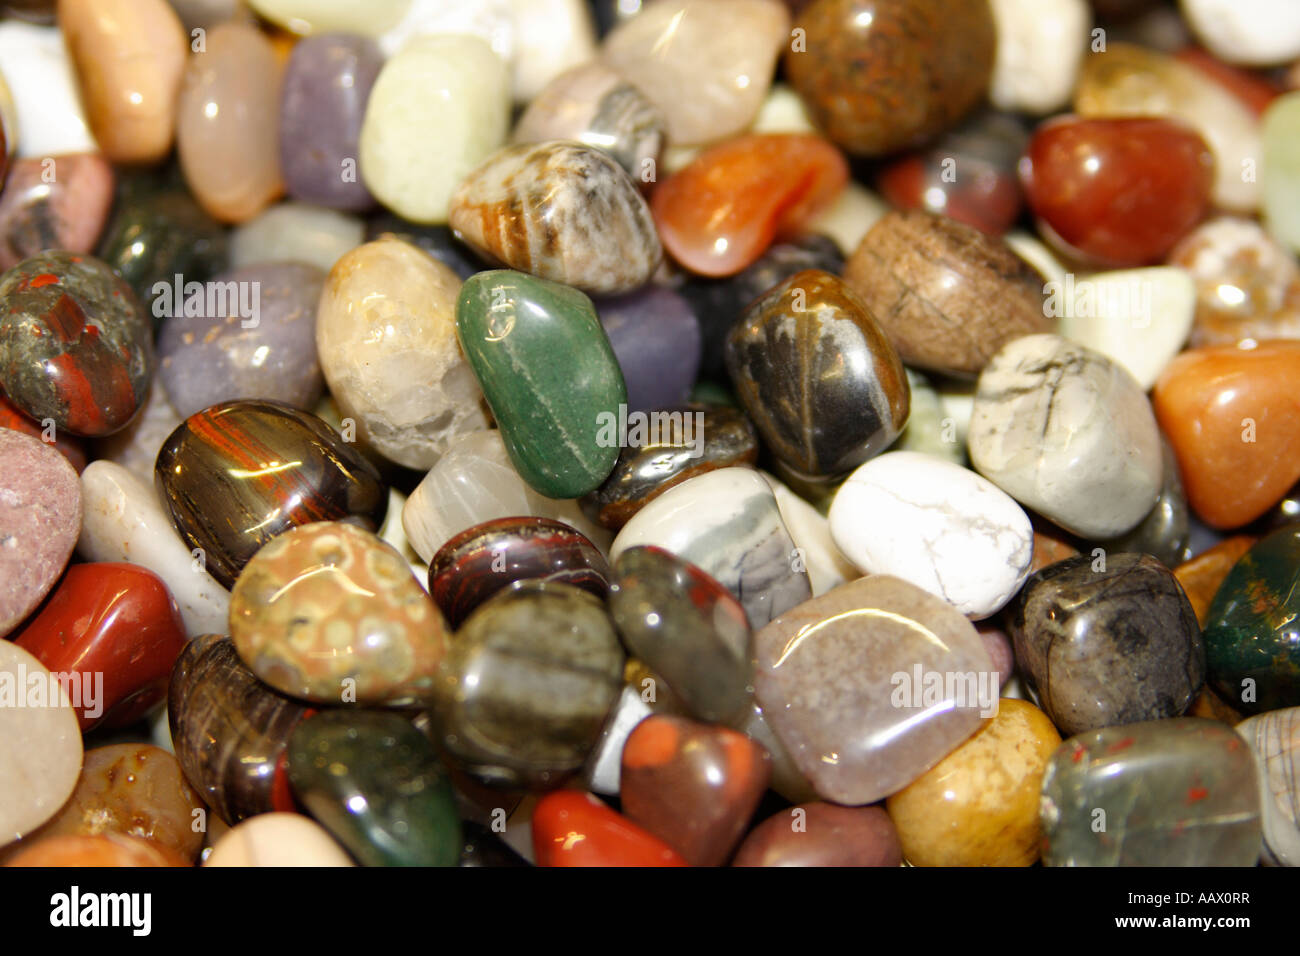 Close-up of an assortment of polished gemstones. - Stock Image